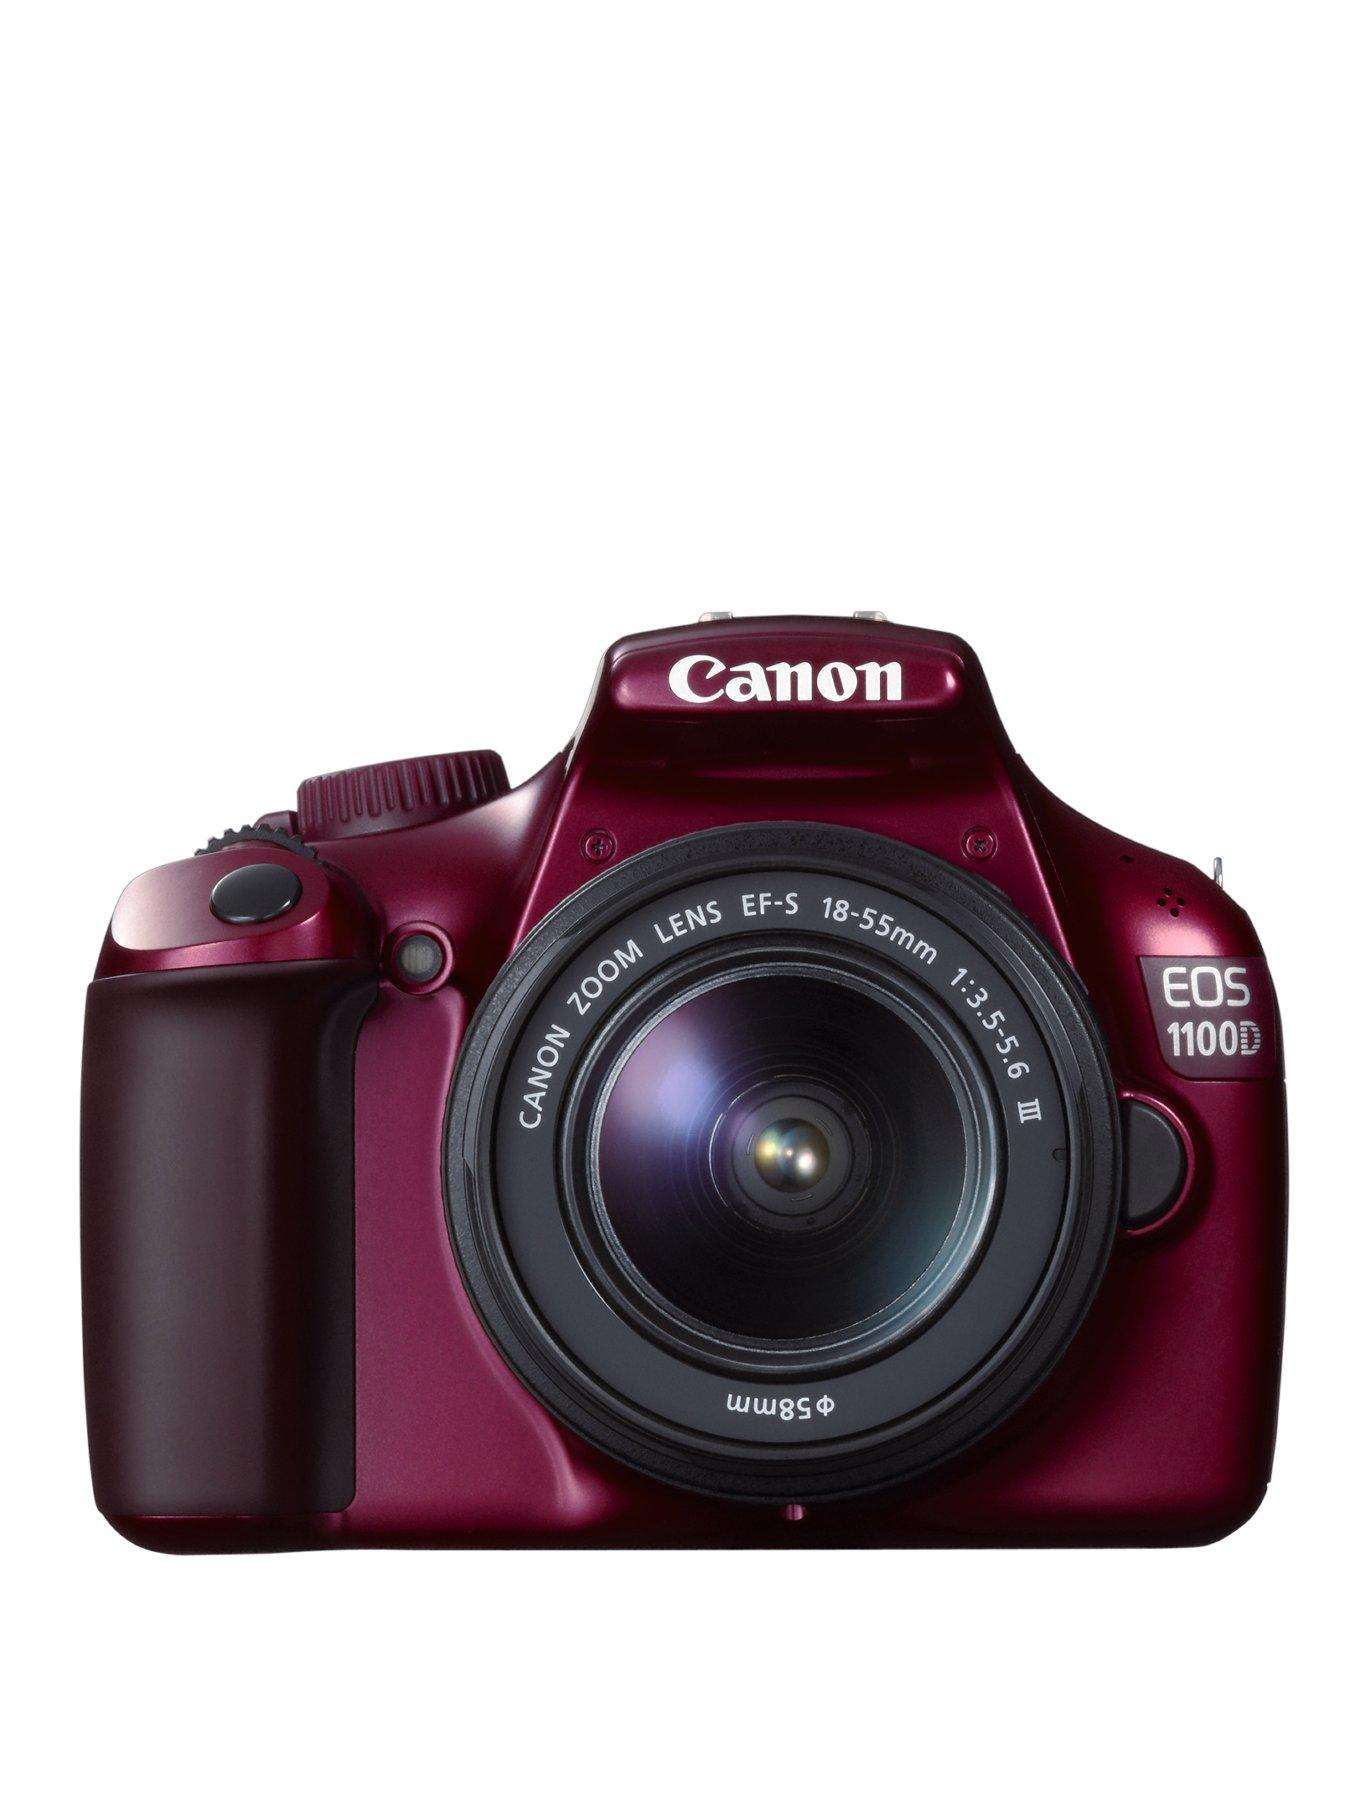 12 Megapixel EOS 1100D Digital SLR Camera with 18-55mm IS Lens